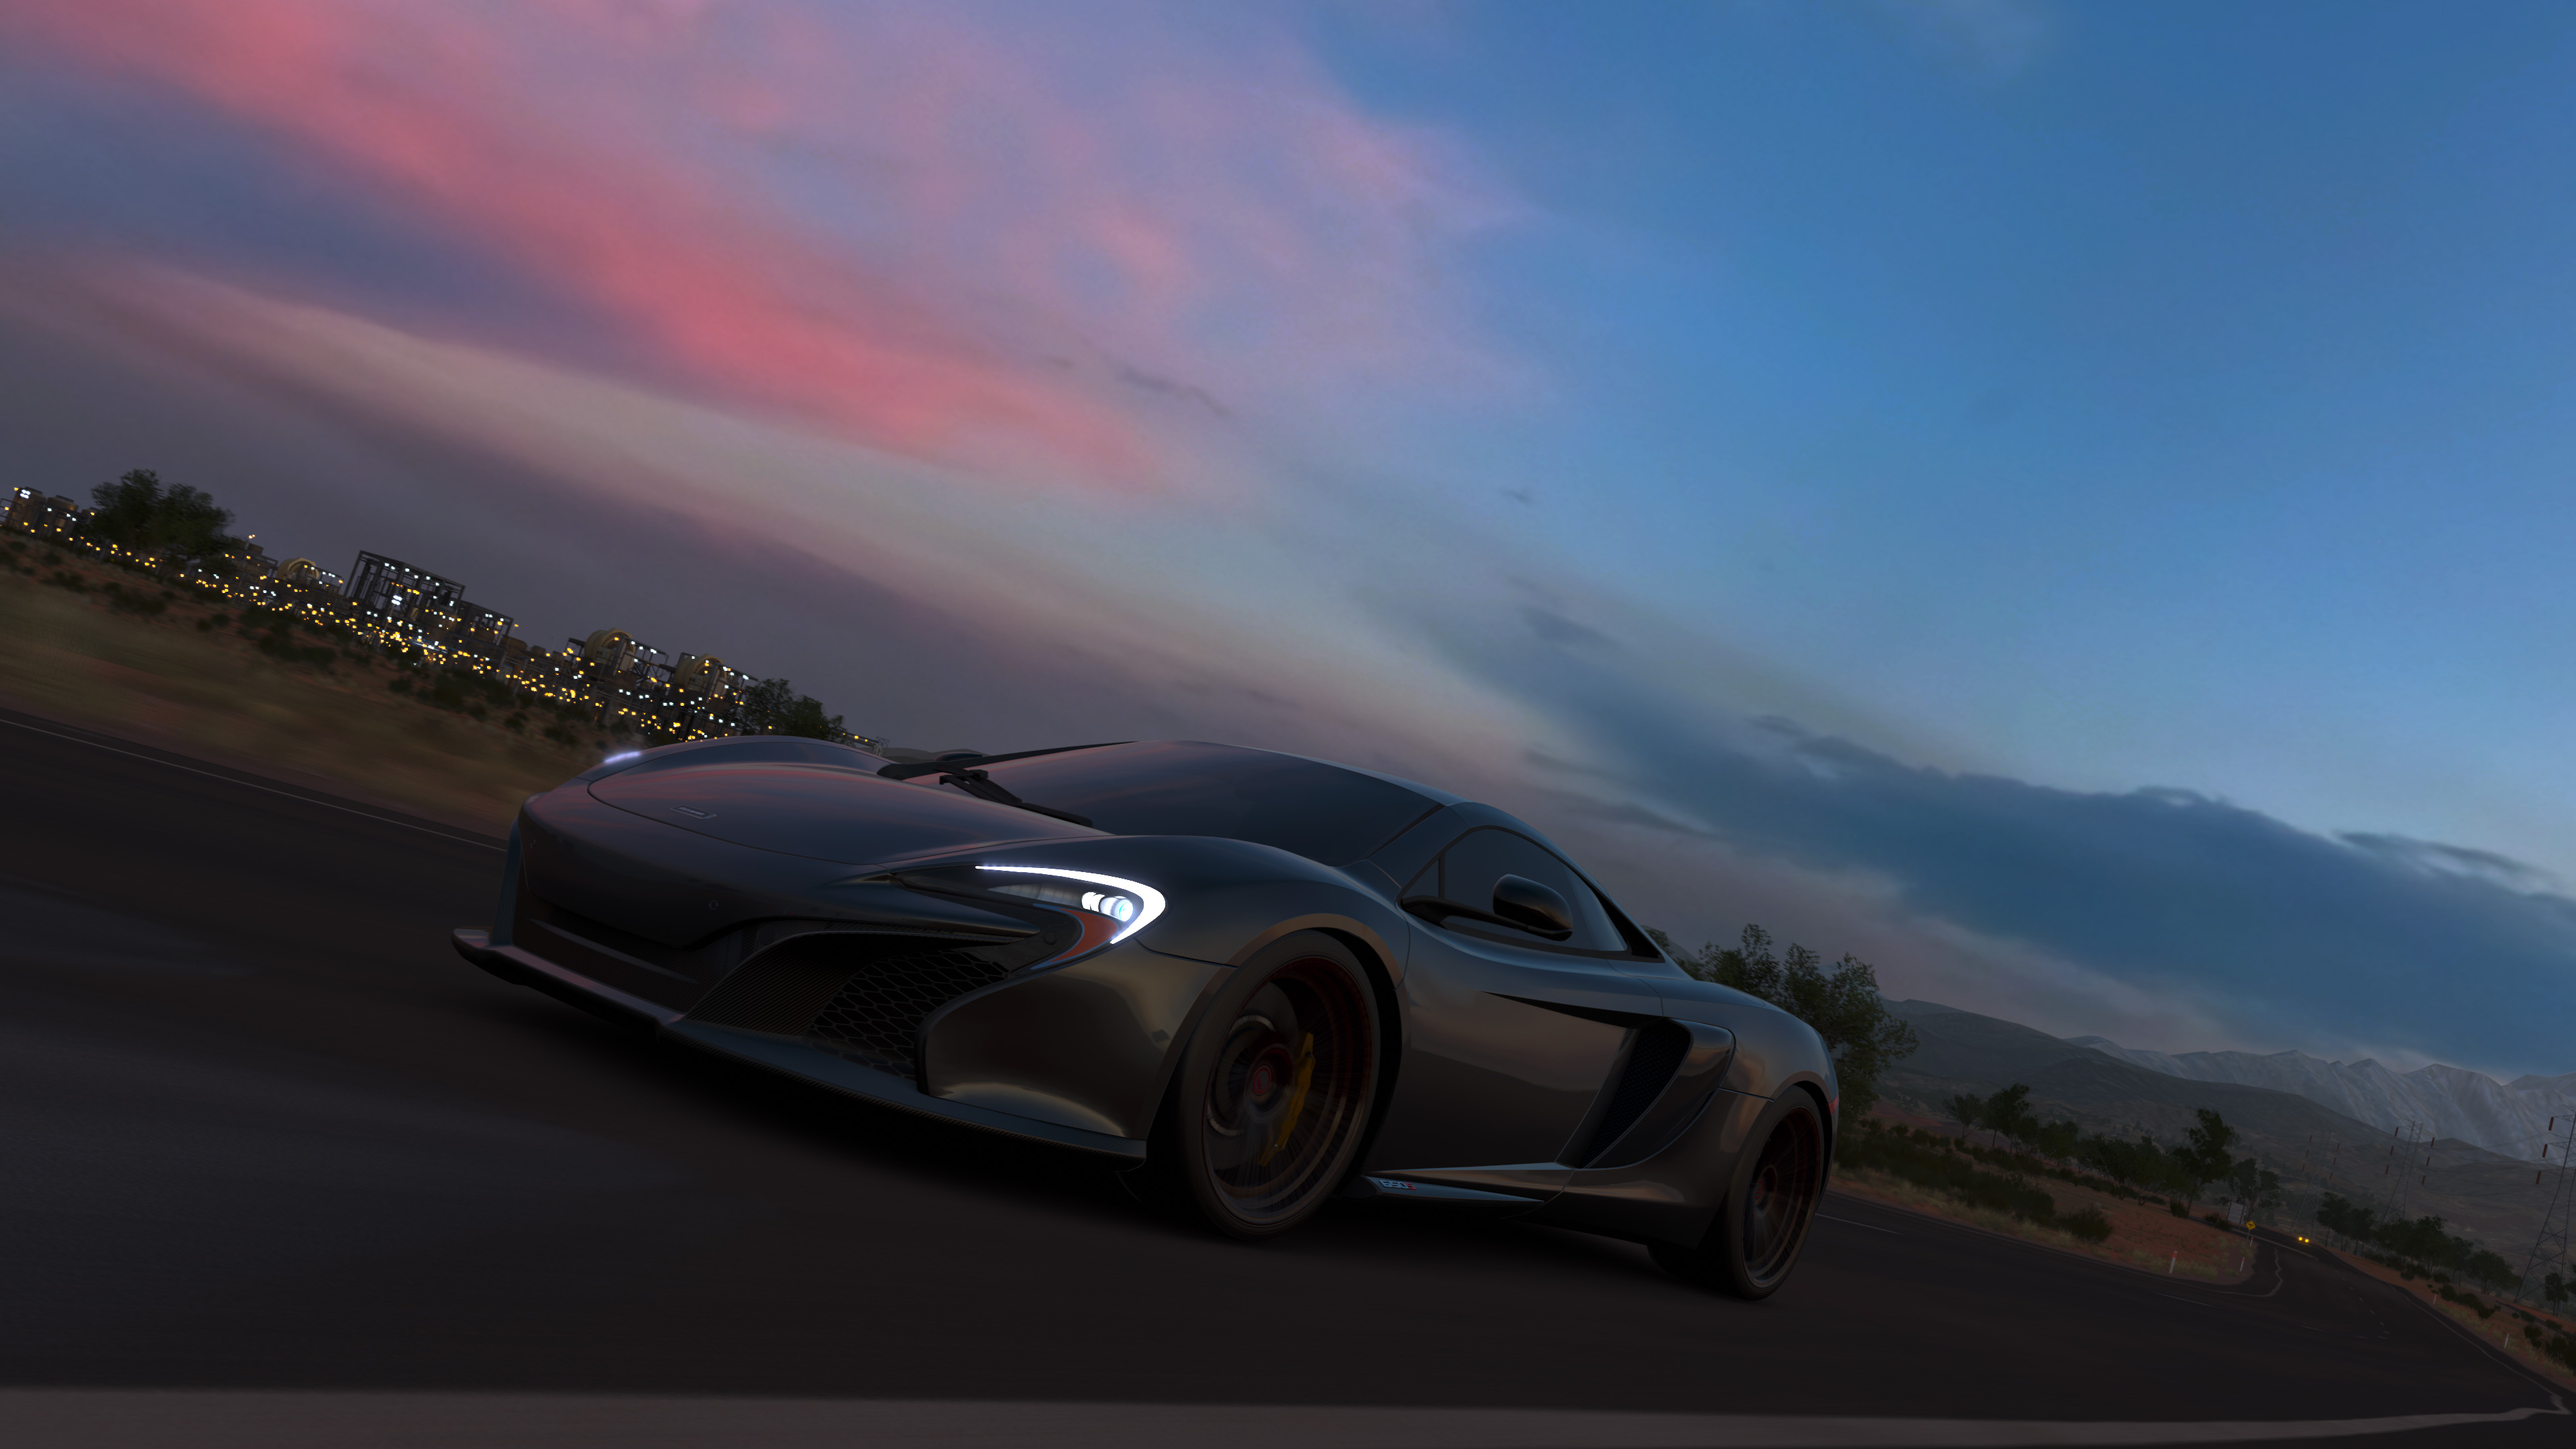 Forza horizon 3 mclaren hd games 4k wallpapers images backgrounds photos and pictures - Forza logo wallpaper ...